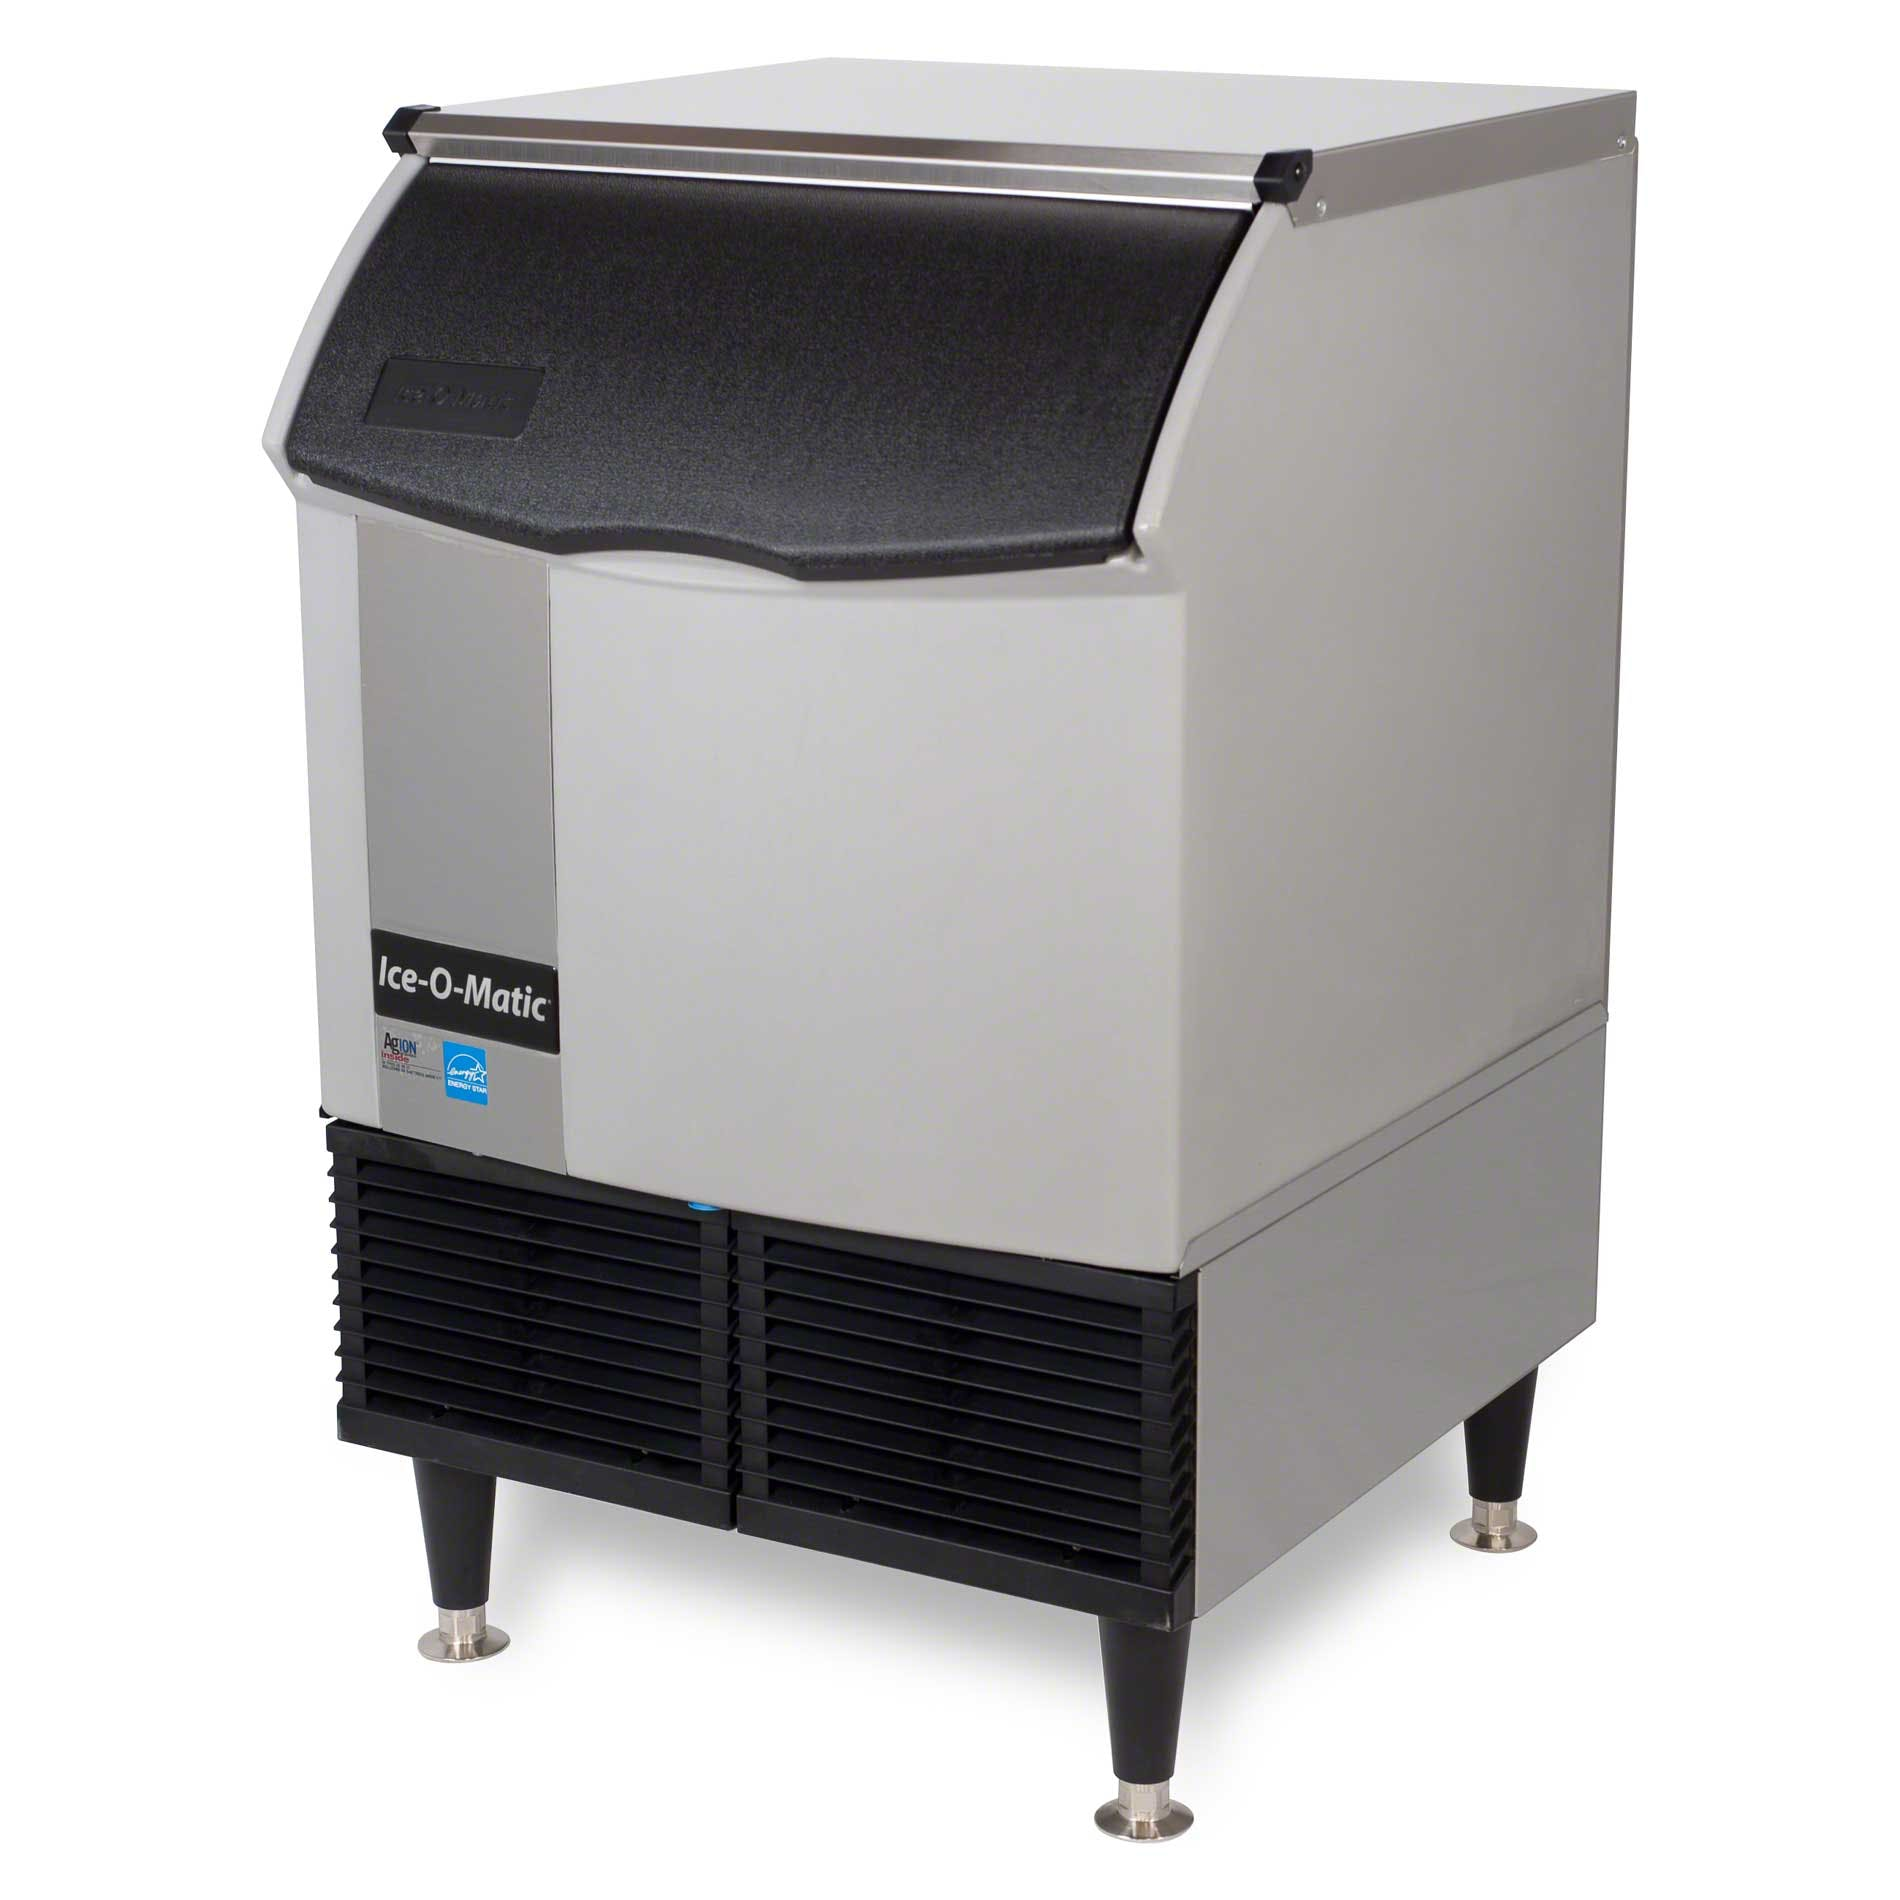 Ice-O-Matic - ICEU220FW 251 lb Self-Contained Full Cube Ice Machine - sold by Food Service Warehouse